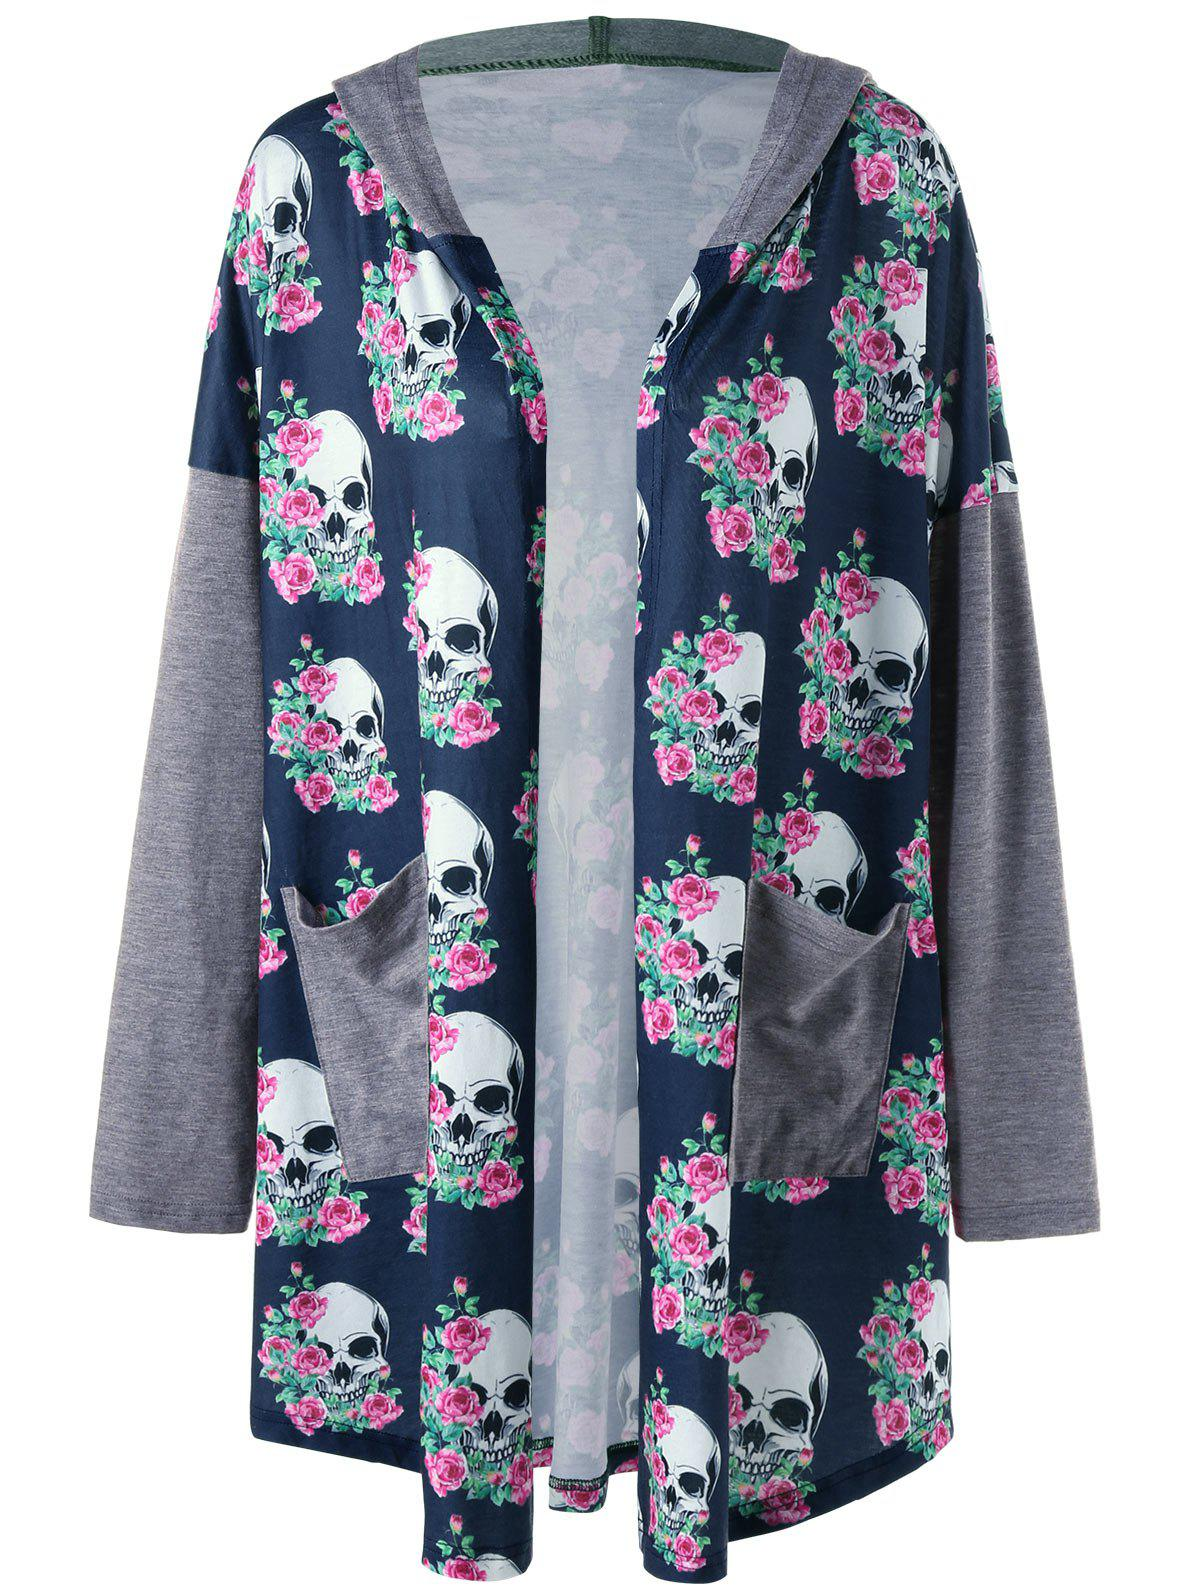 Plus Size Hooded Skulls CardiganWOMEN<br><br>Size: 5XL; Color: INK BLUE; Type: Cardigans; Material: Polyester,Spandex; Sleeve Length: Full; Collar: Collarless; Style: Casual; Season: Fall,Spring; Pattern Type: Skull; Weight: 0.3700kg; Package Contents: 1 x Cardigan;